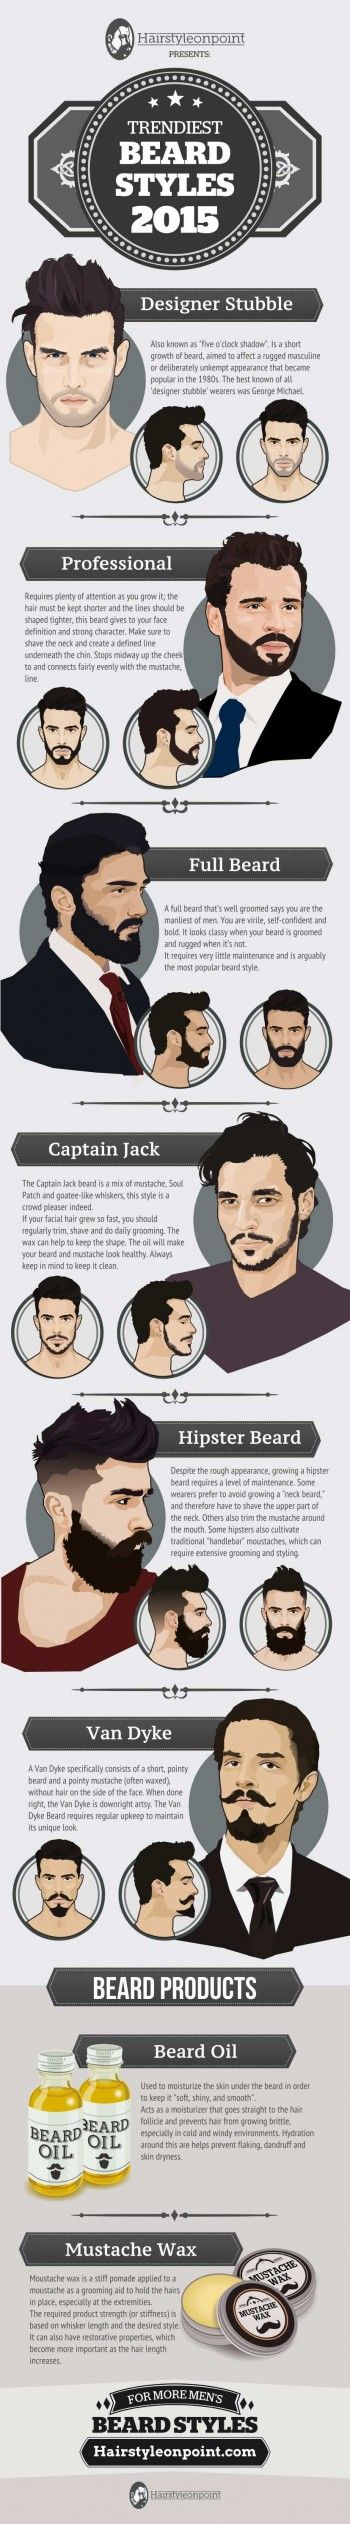 Beard Style | Current trends #Men  #Hair #Fashion